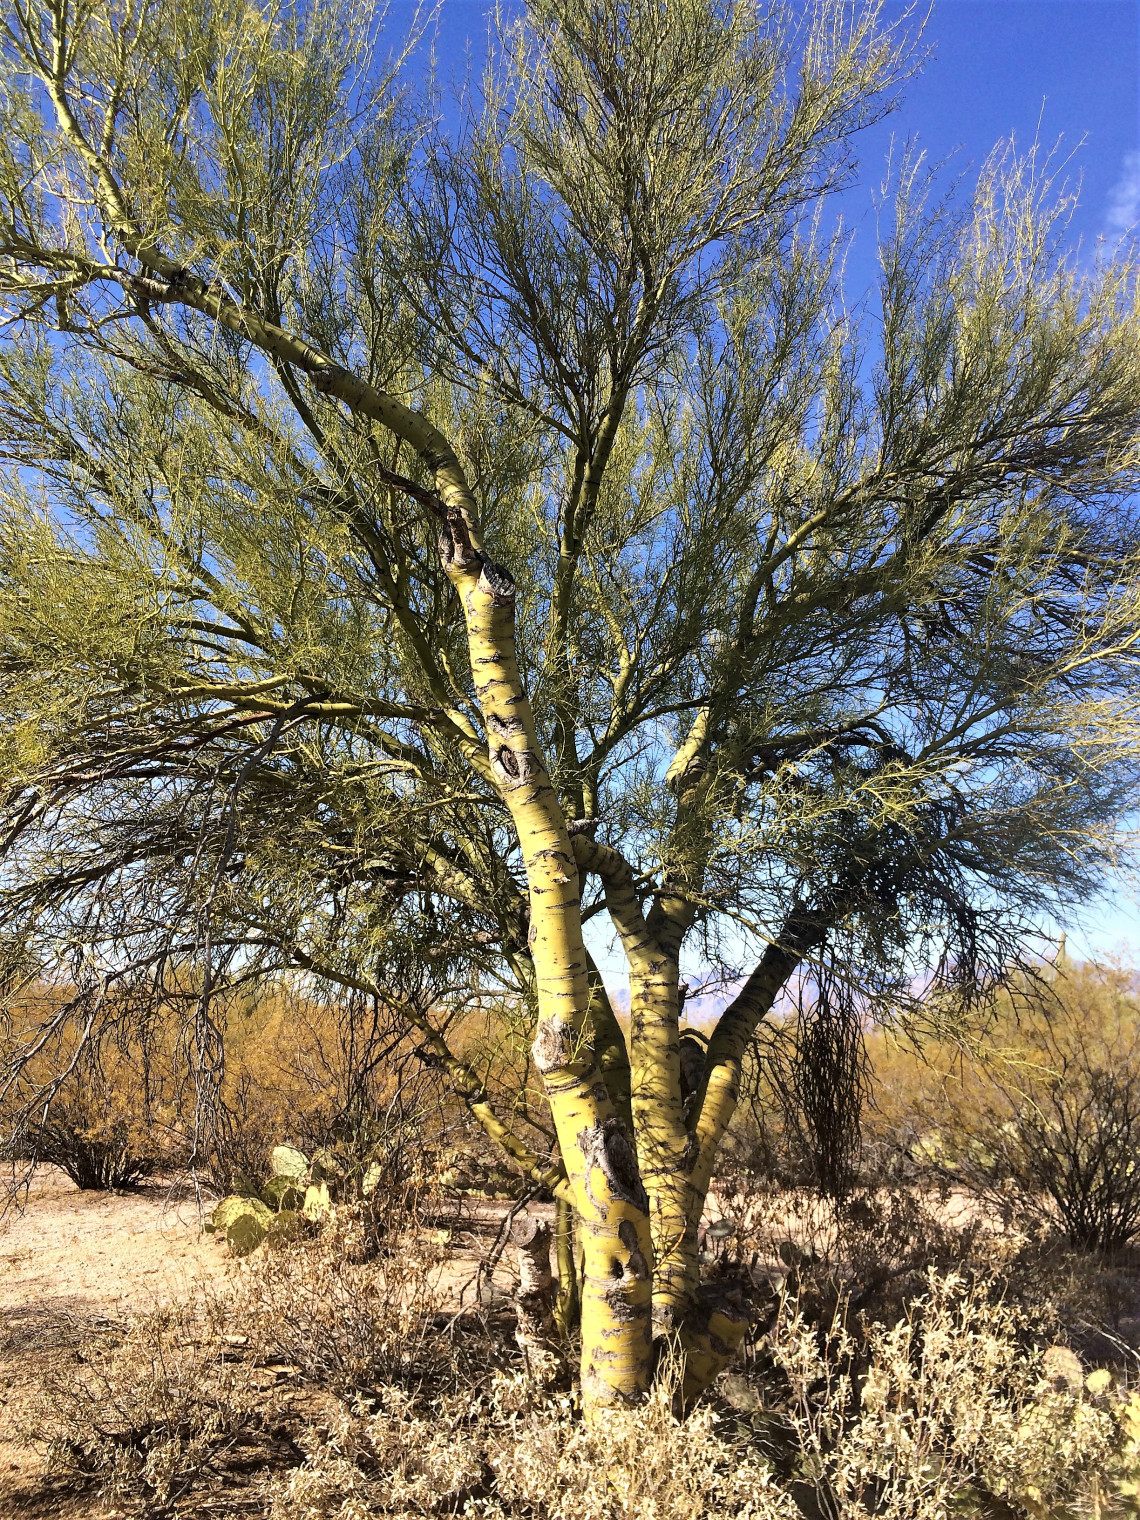 The beautiful, green skinned Paloverde tree.